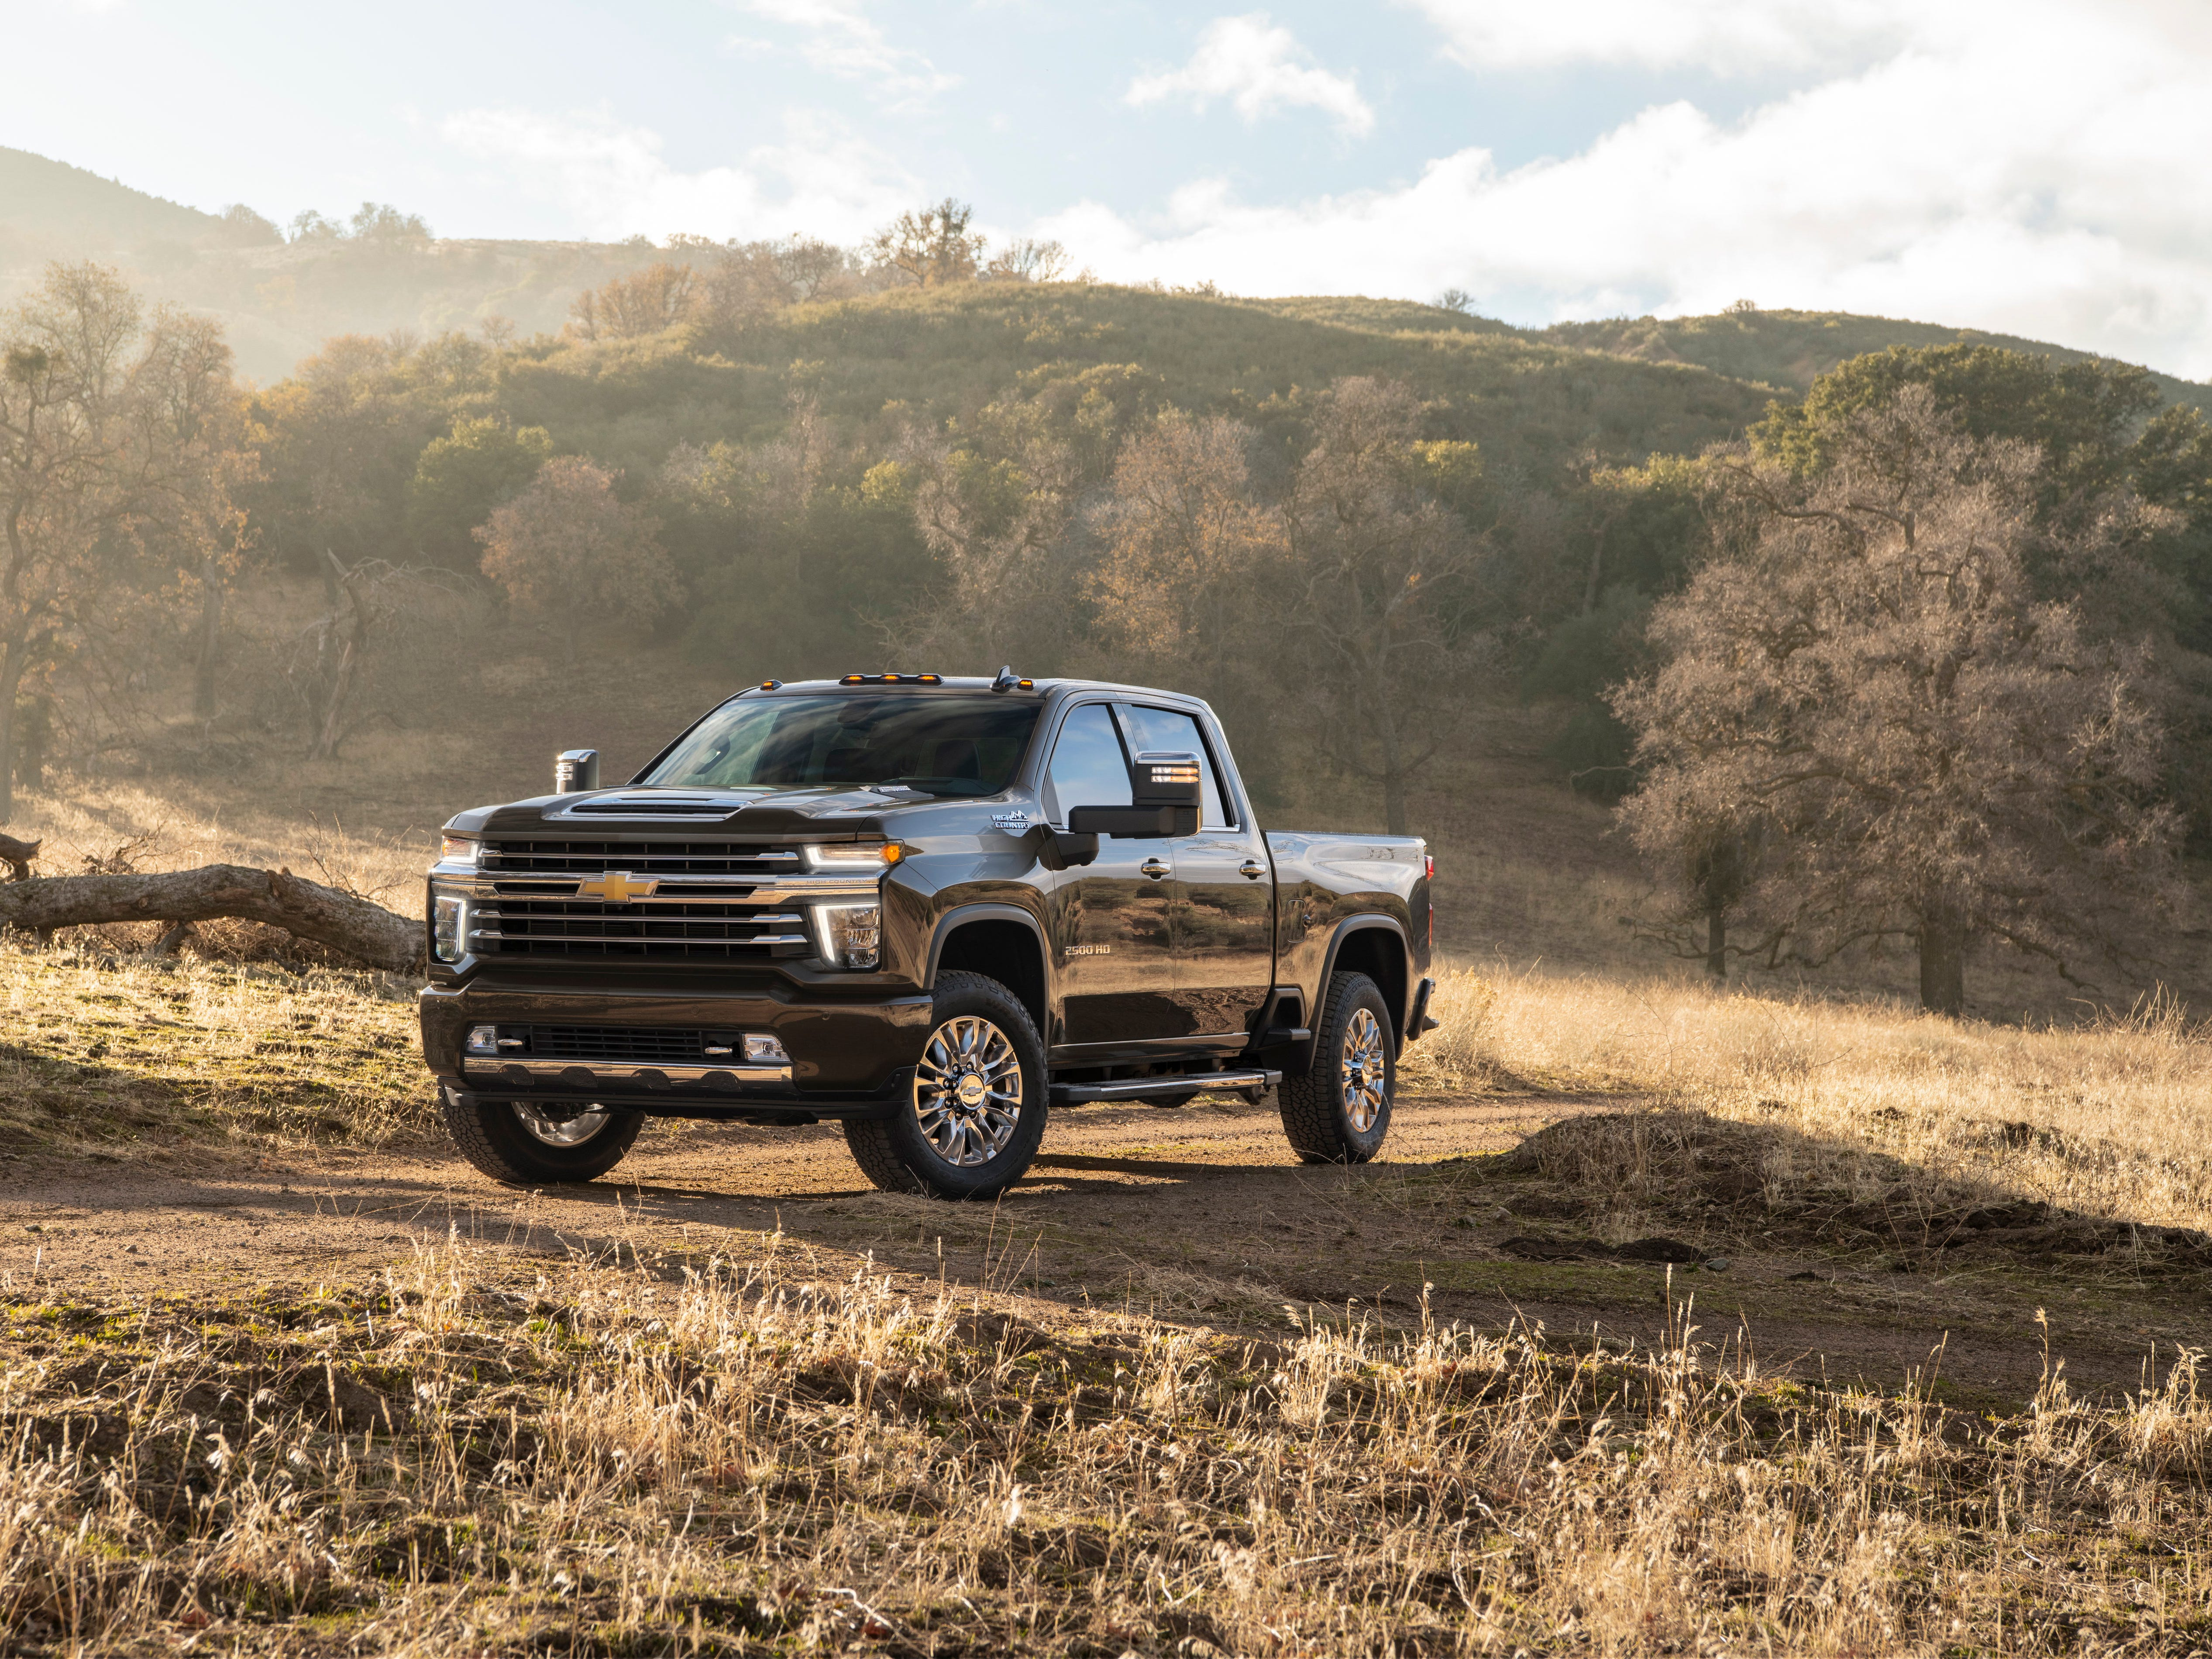 The Silverado HD trucks' new exterior design differs from the light-duty Silverado that debuted at the Detroit auto show last year.  This is the 2020 Chevrolet Silverado 2500 HD High Country.